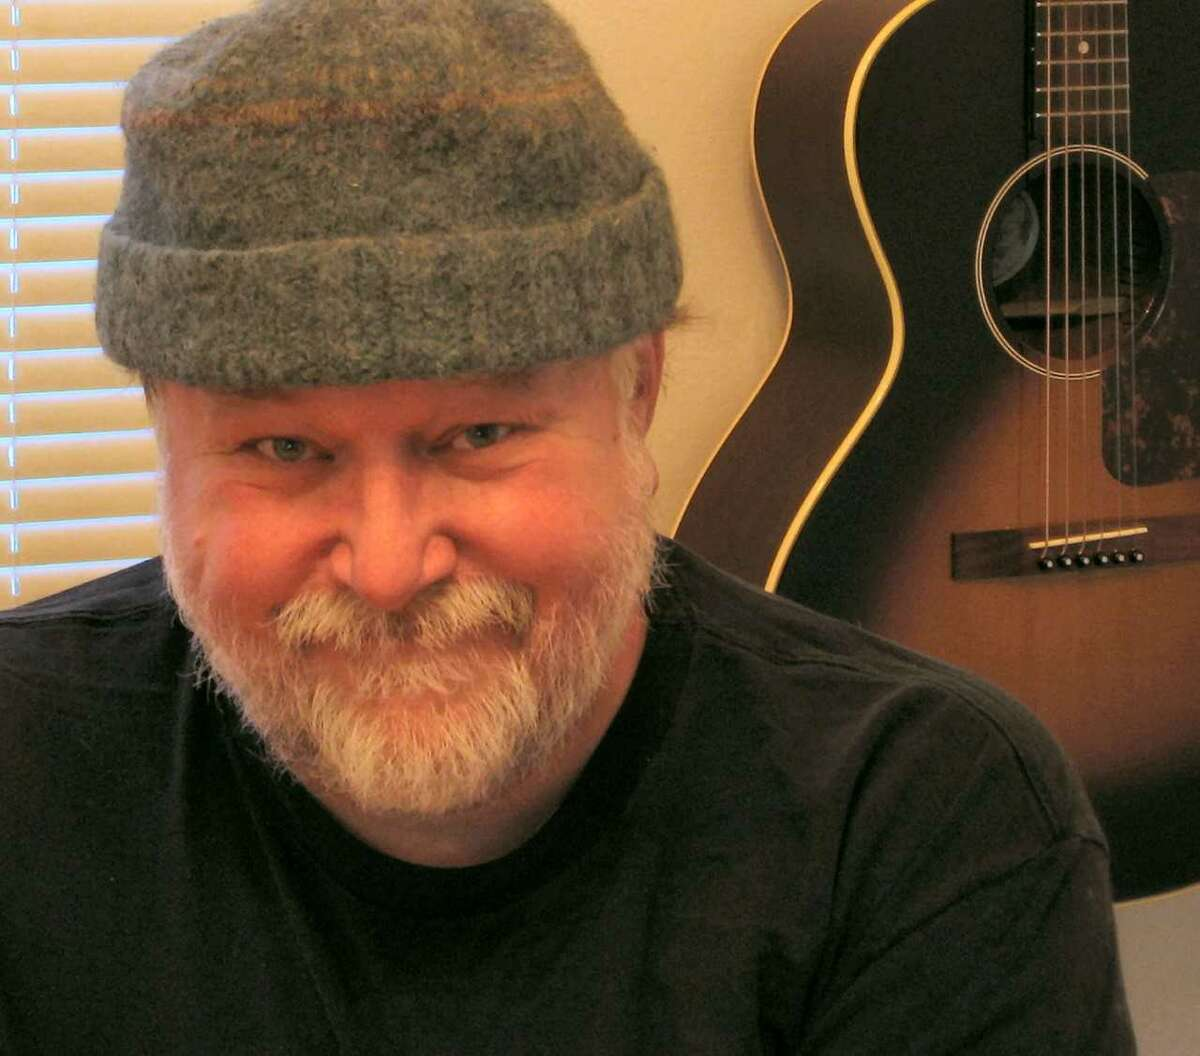 Joel Mabus, Old Songs Community Arts Center, 37 South Main St., Voorheesville. 7:30 p.m. Friday.